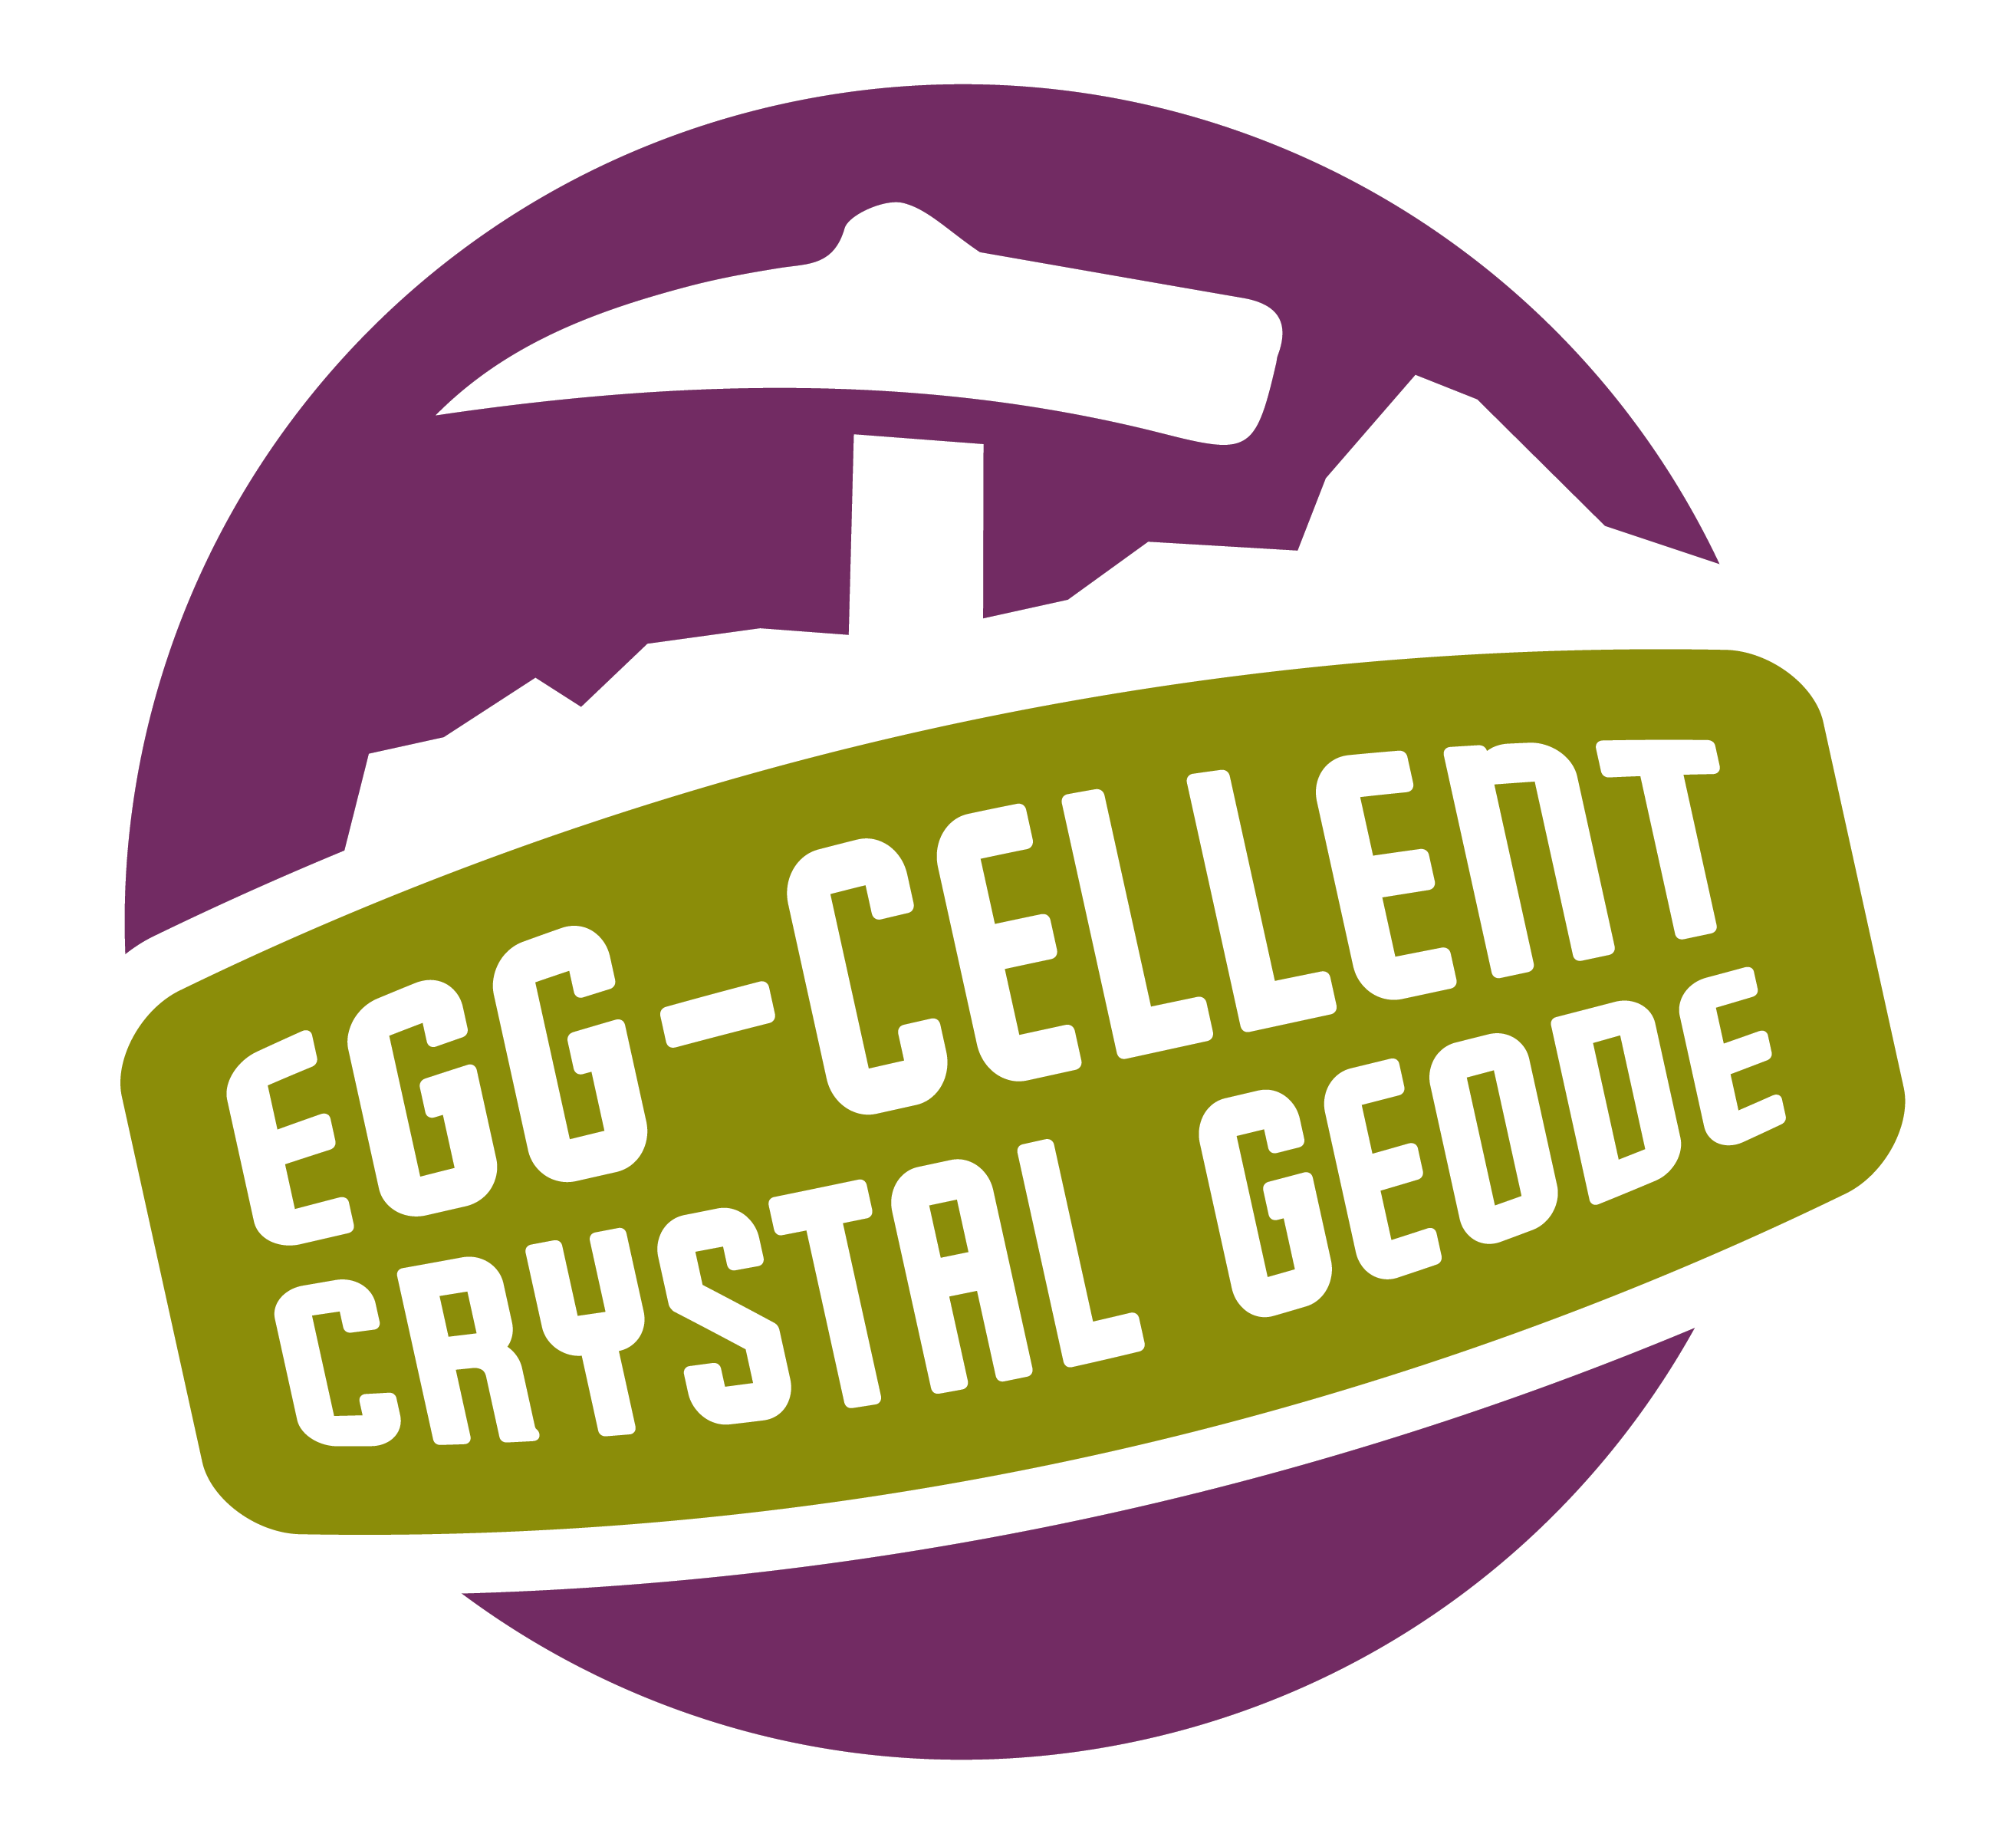 geode purple science experiment logo